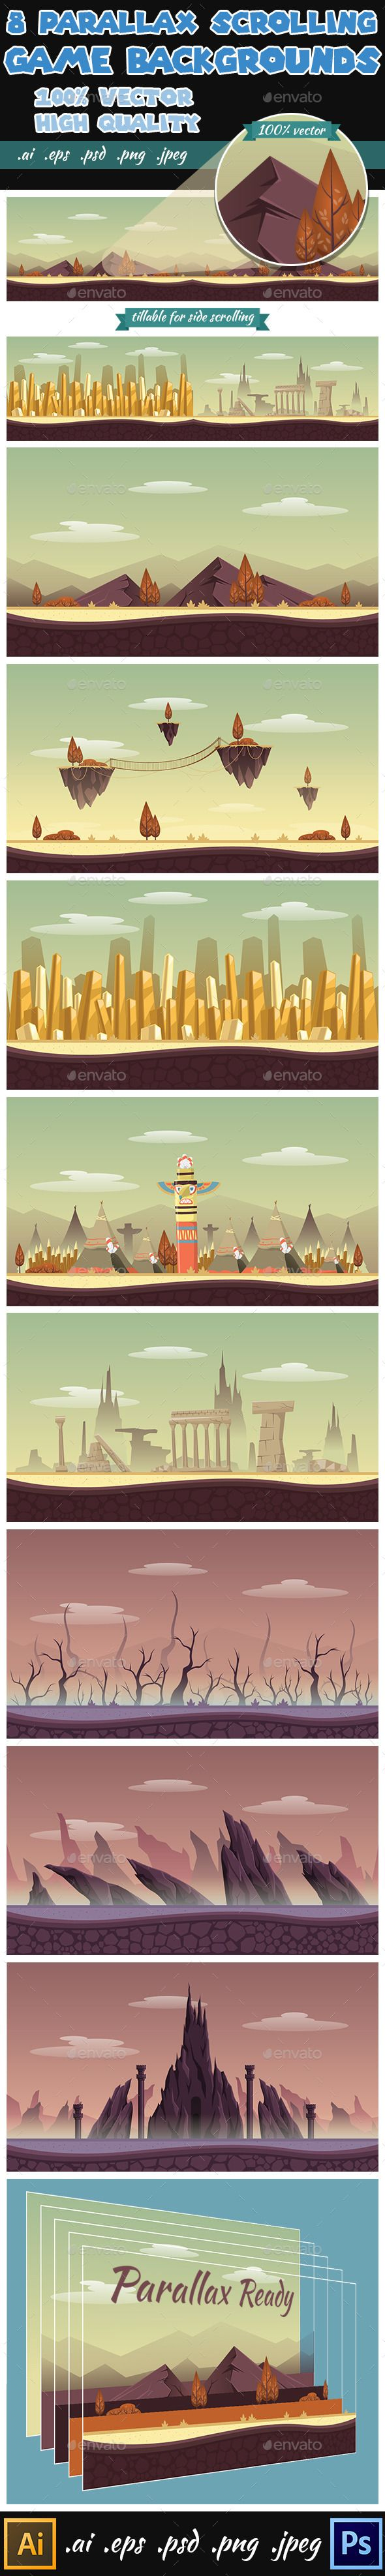 8 Game Backgrounds Parallex Side Scrolling